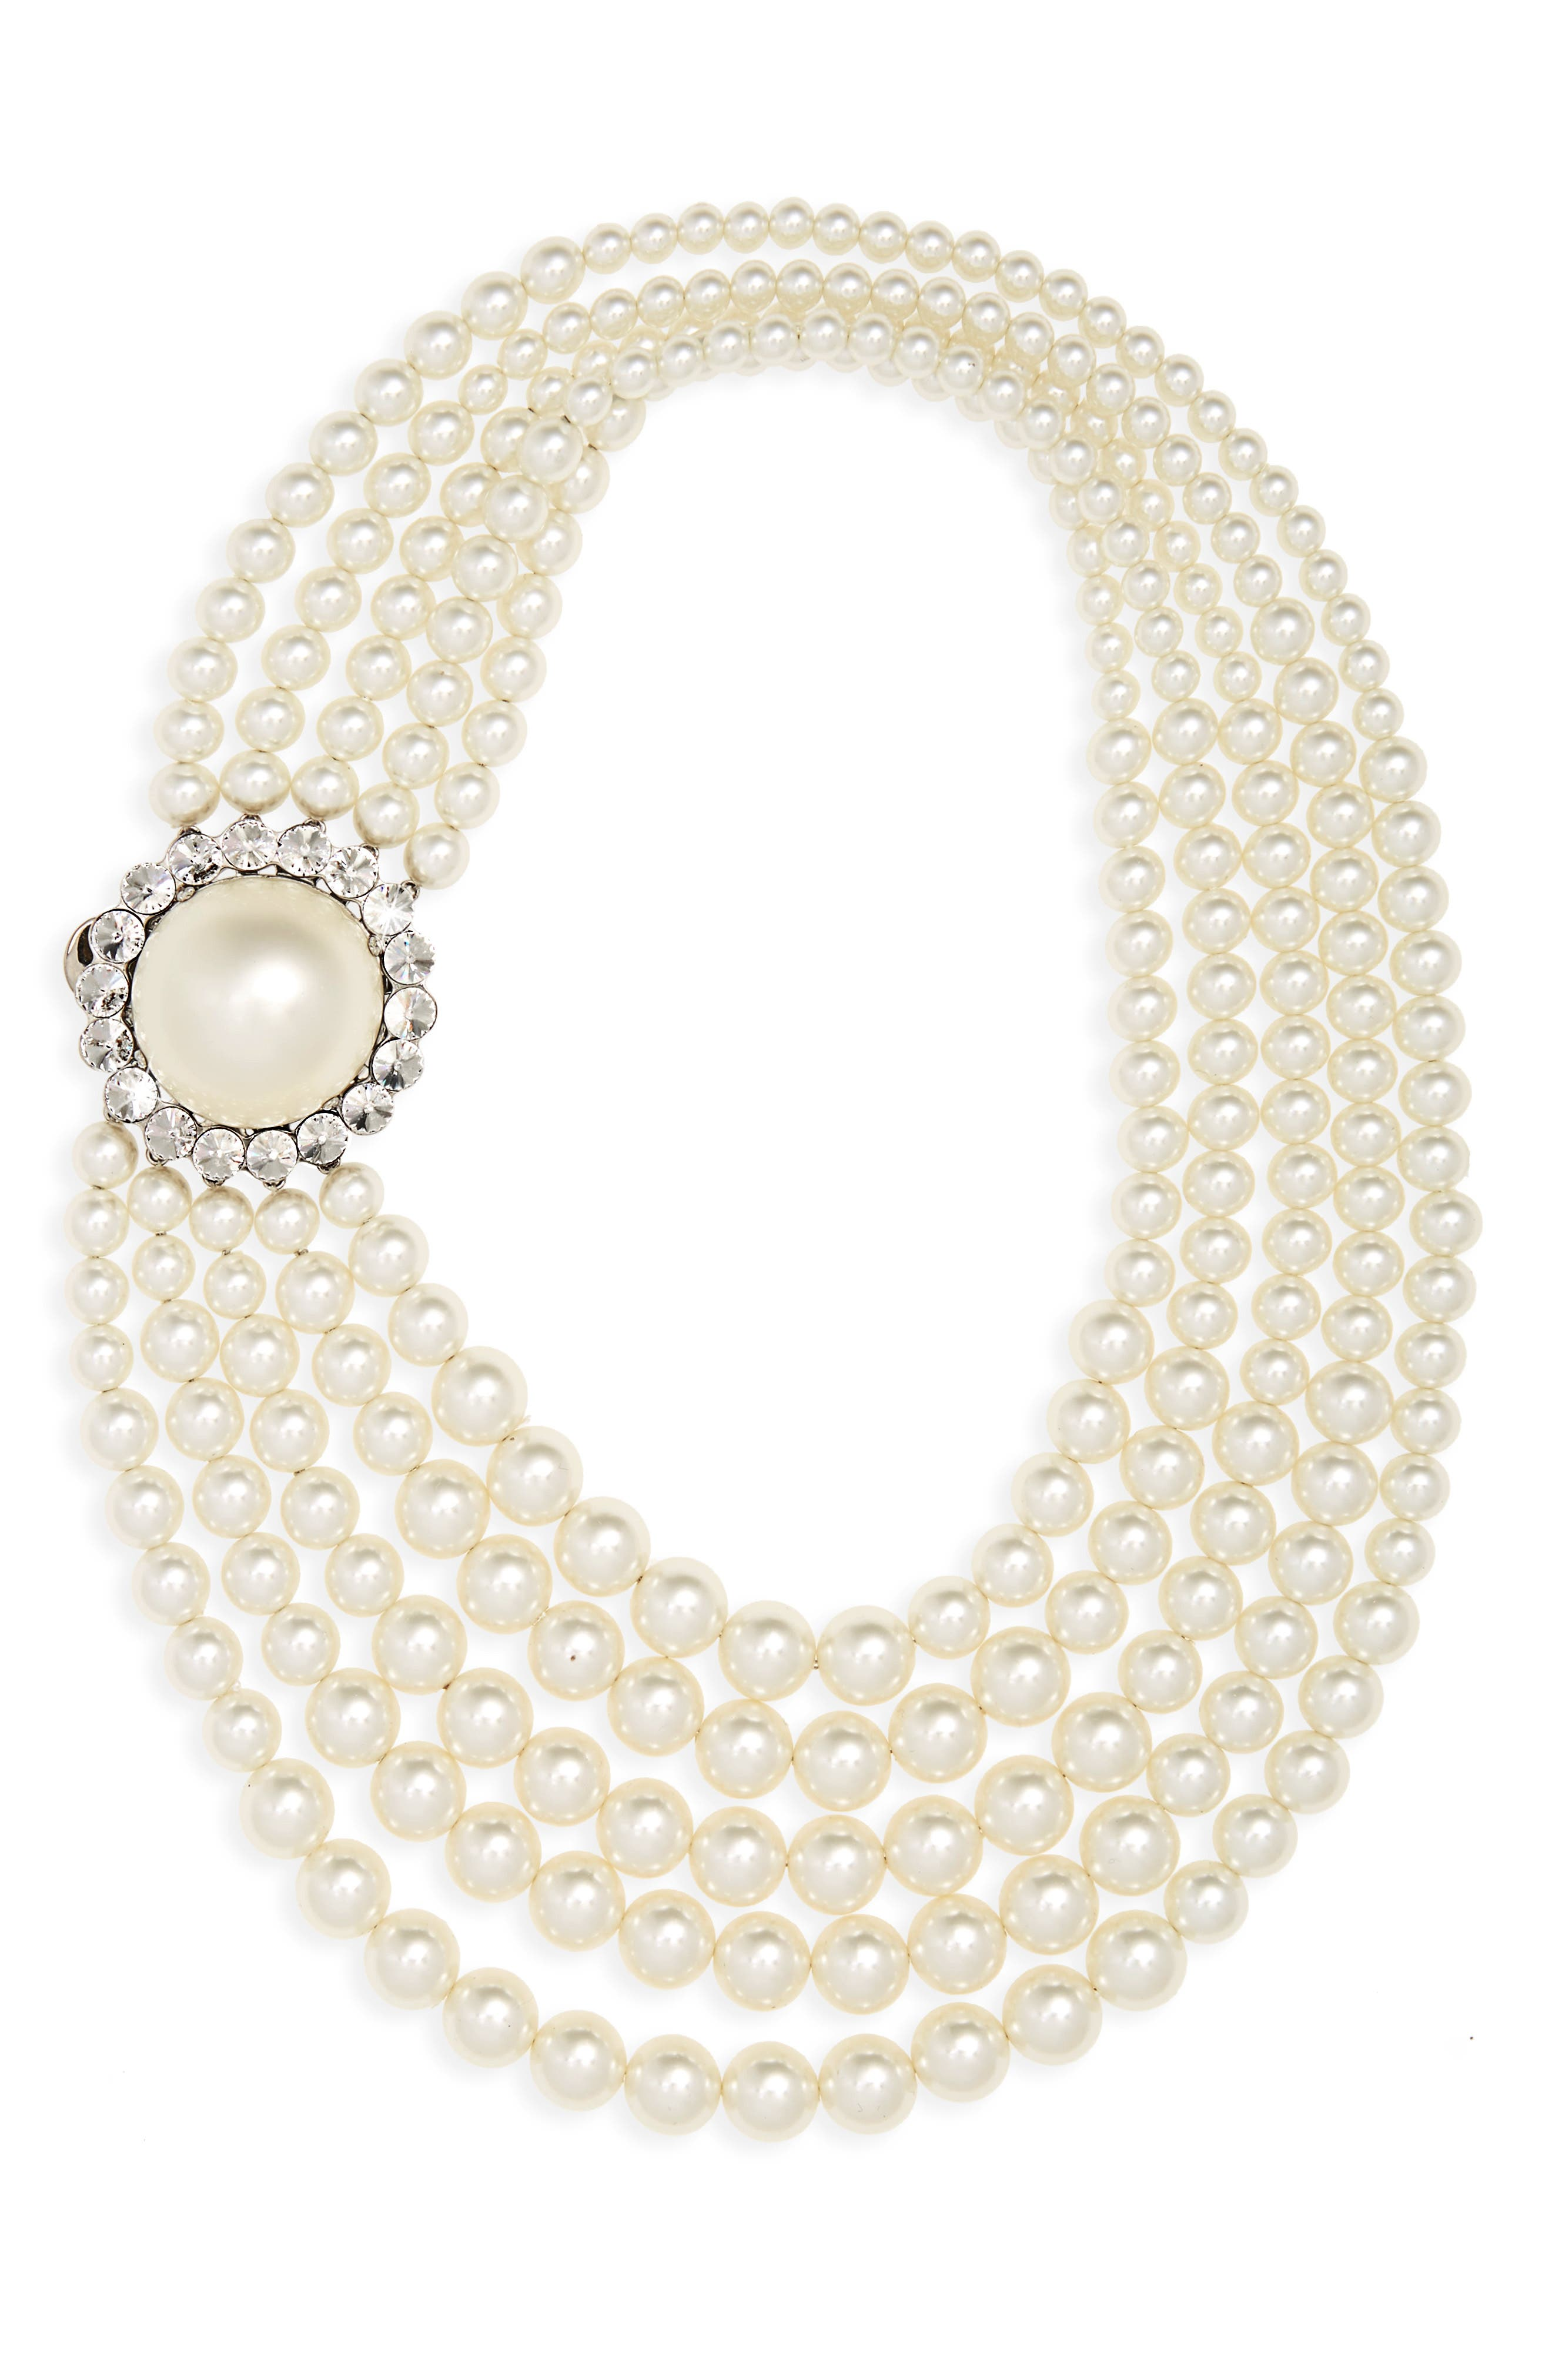 Multistrand Imitation Pearl Necklace,                         Main,                         color, Pearl